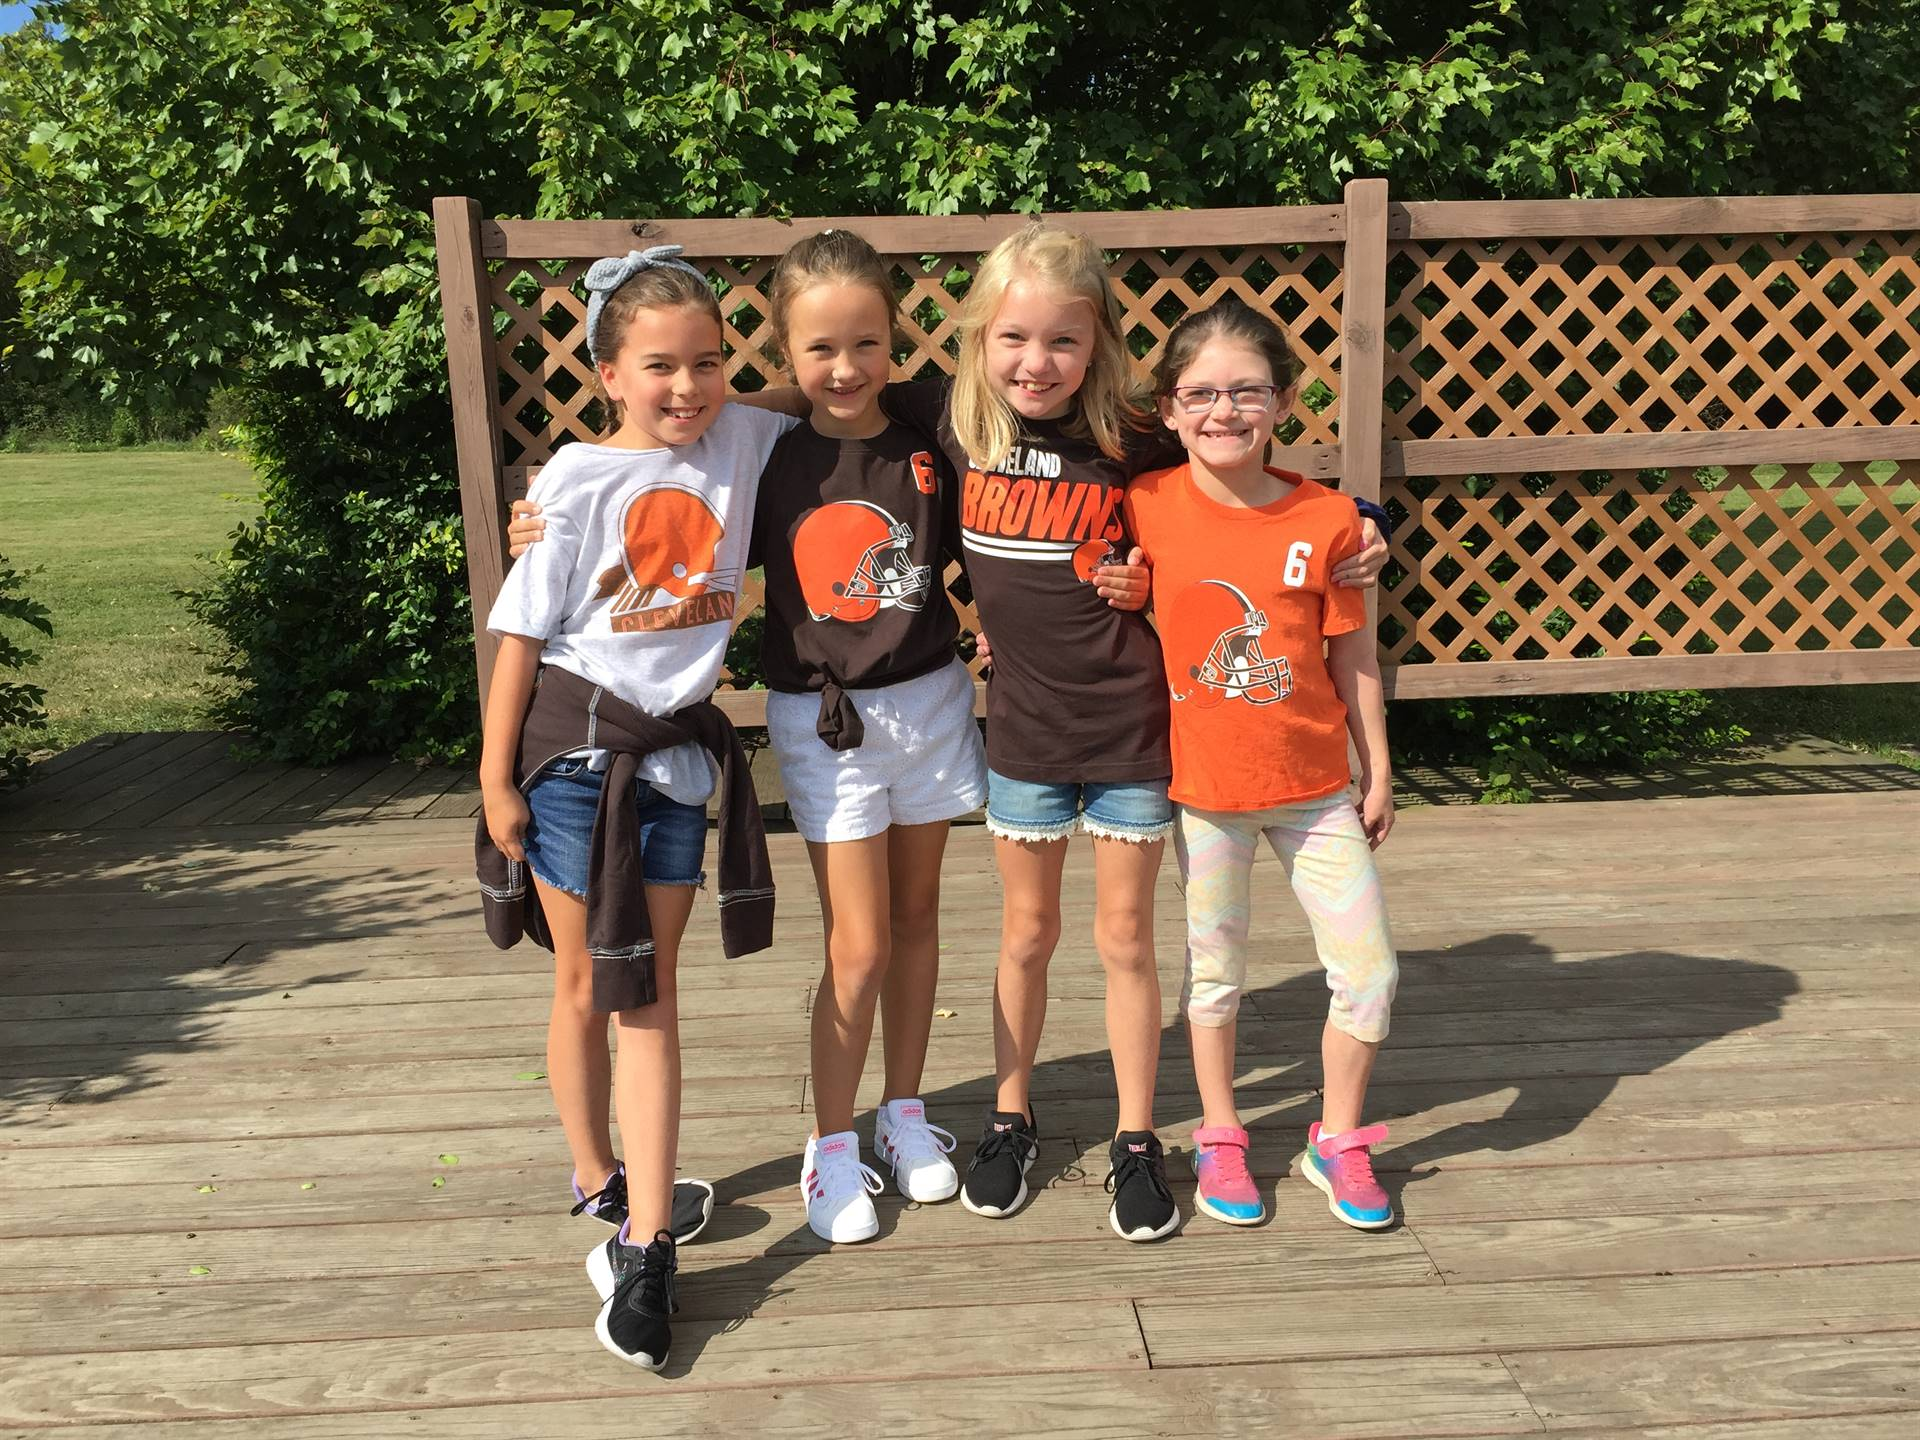 Browns Day!